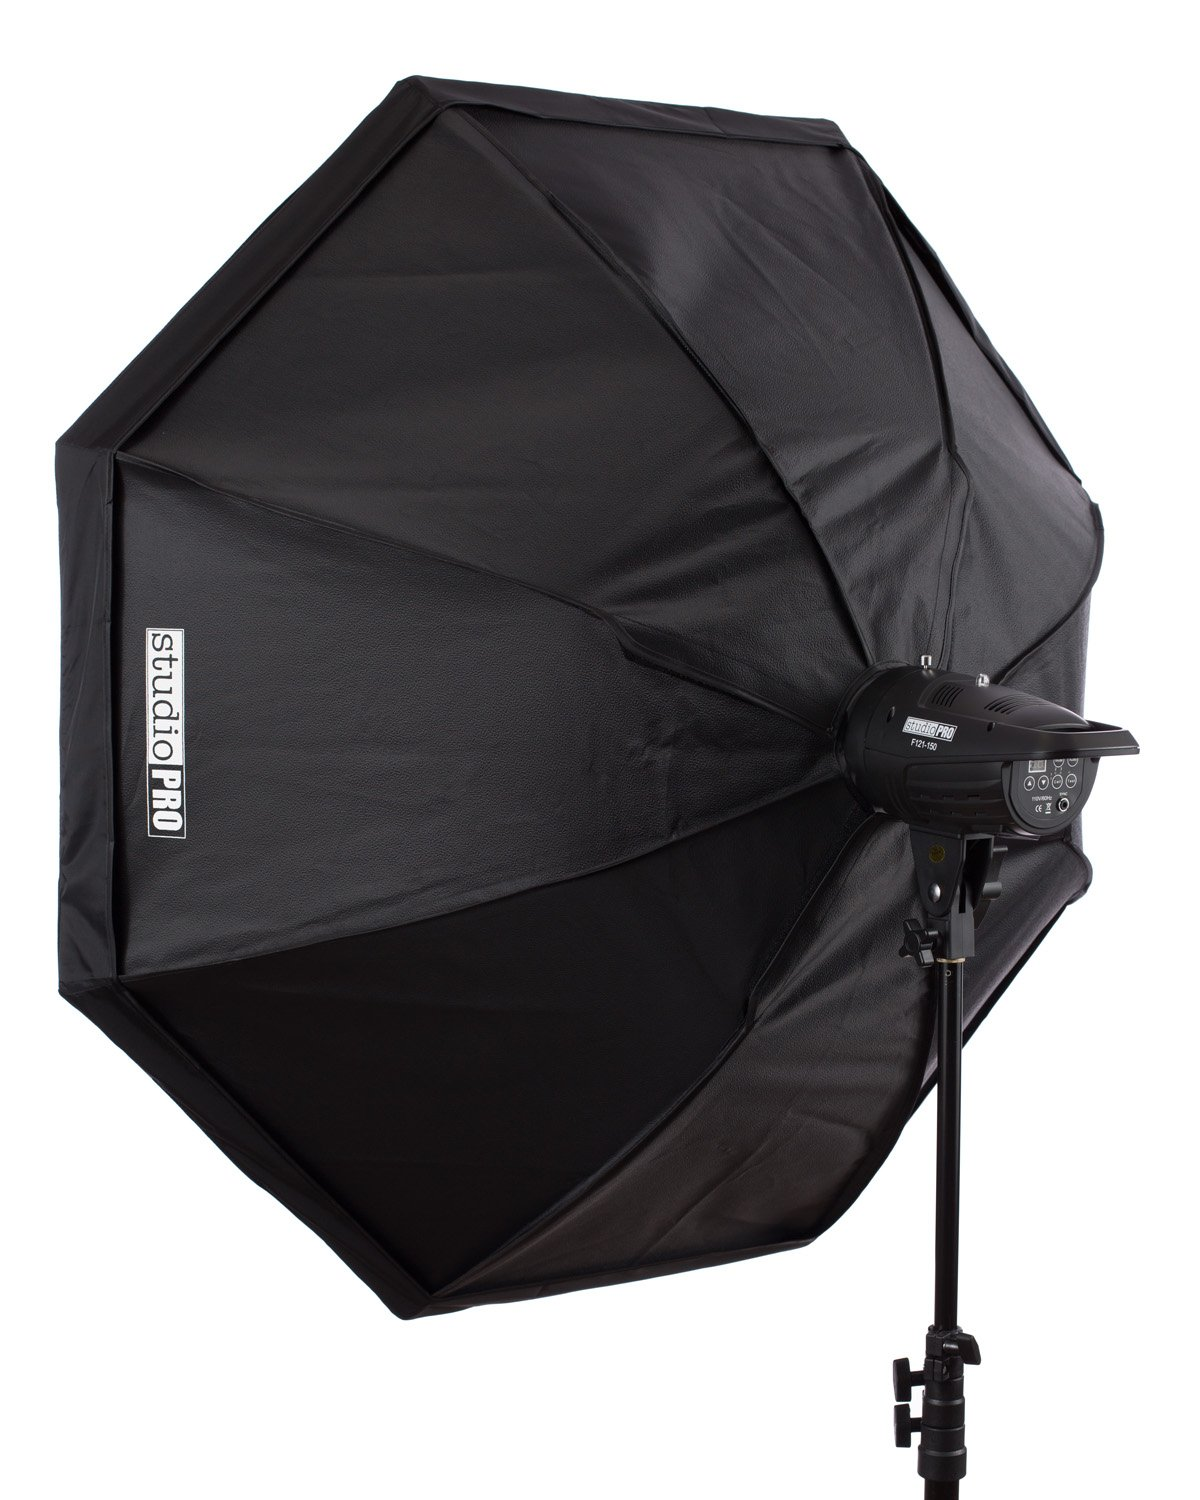 StudioPRO 68 Inch Octagon Softbox Photography Light Diffuser & Modifier with Bowens Speedring Mount For Monolight Photo Studio Strobe Lighting by Fovitec (Image #5)